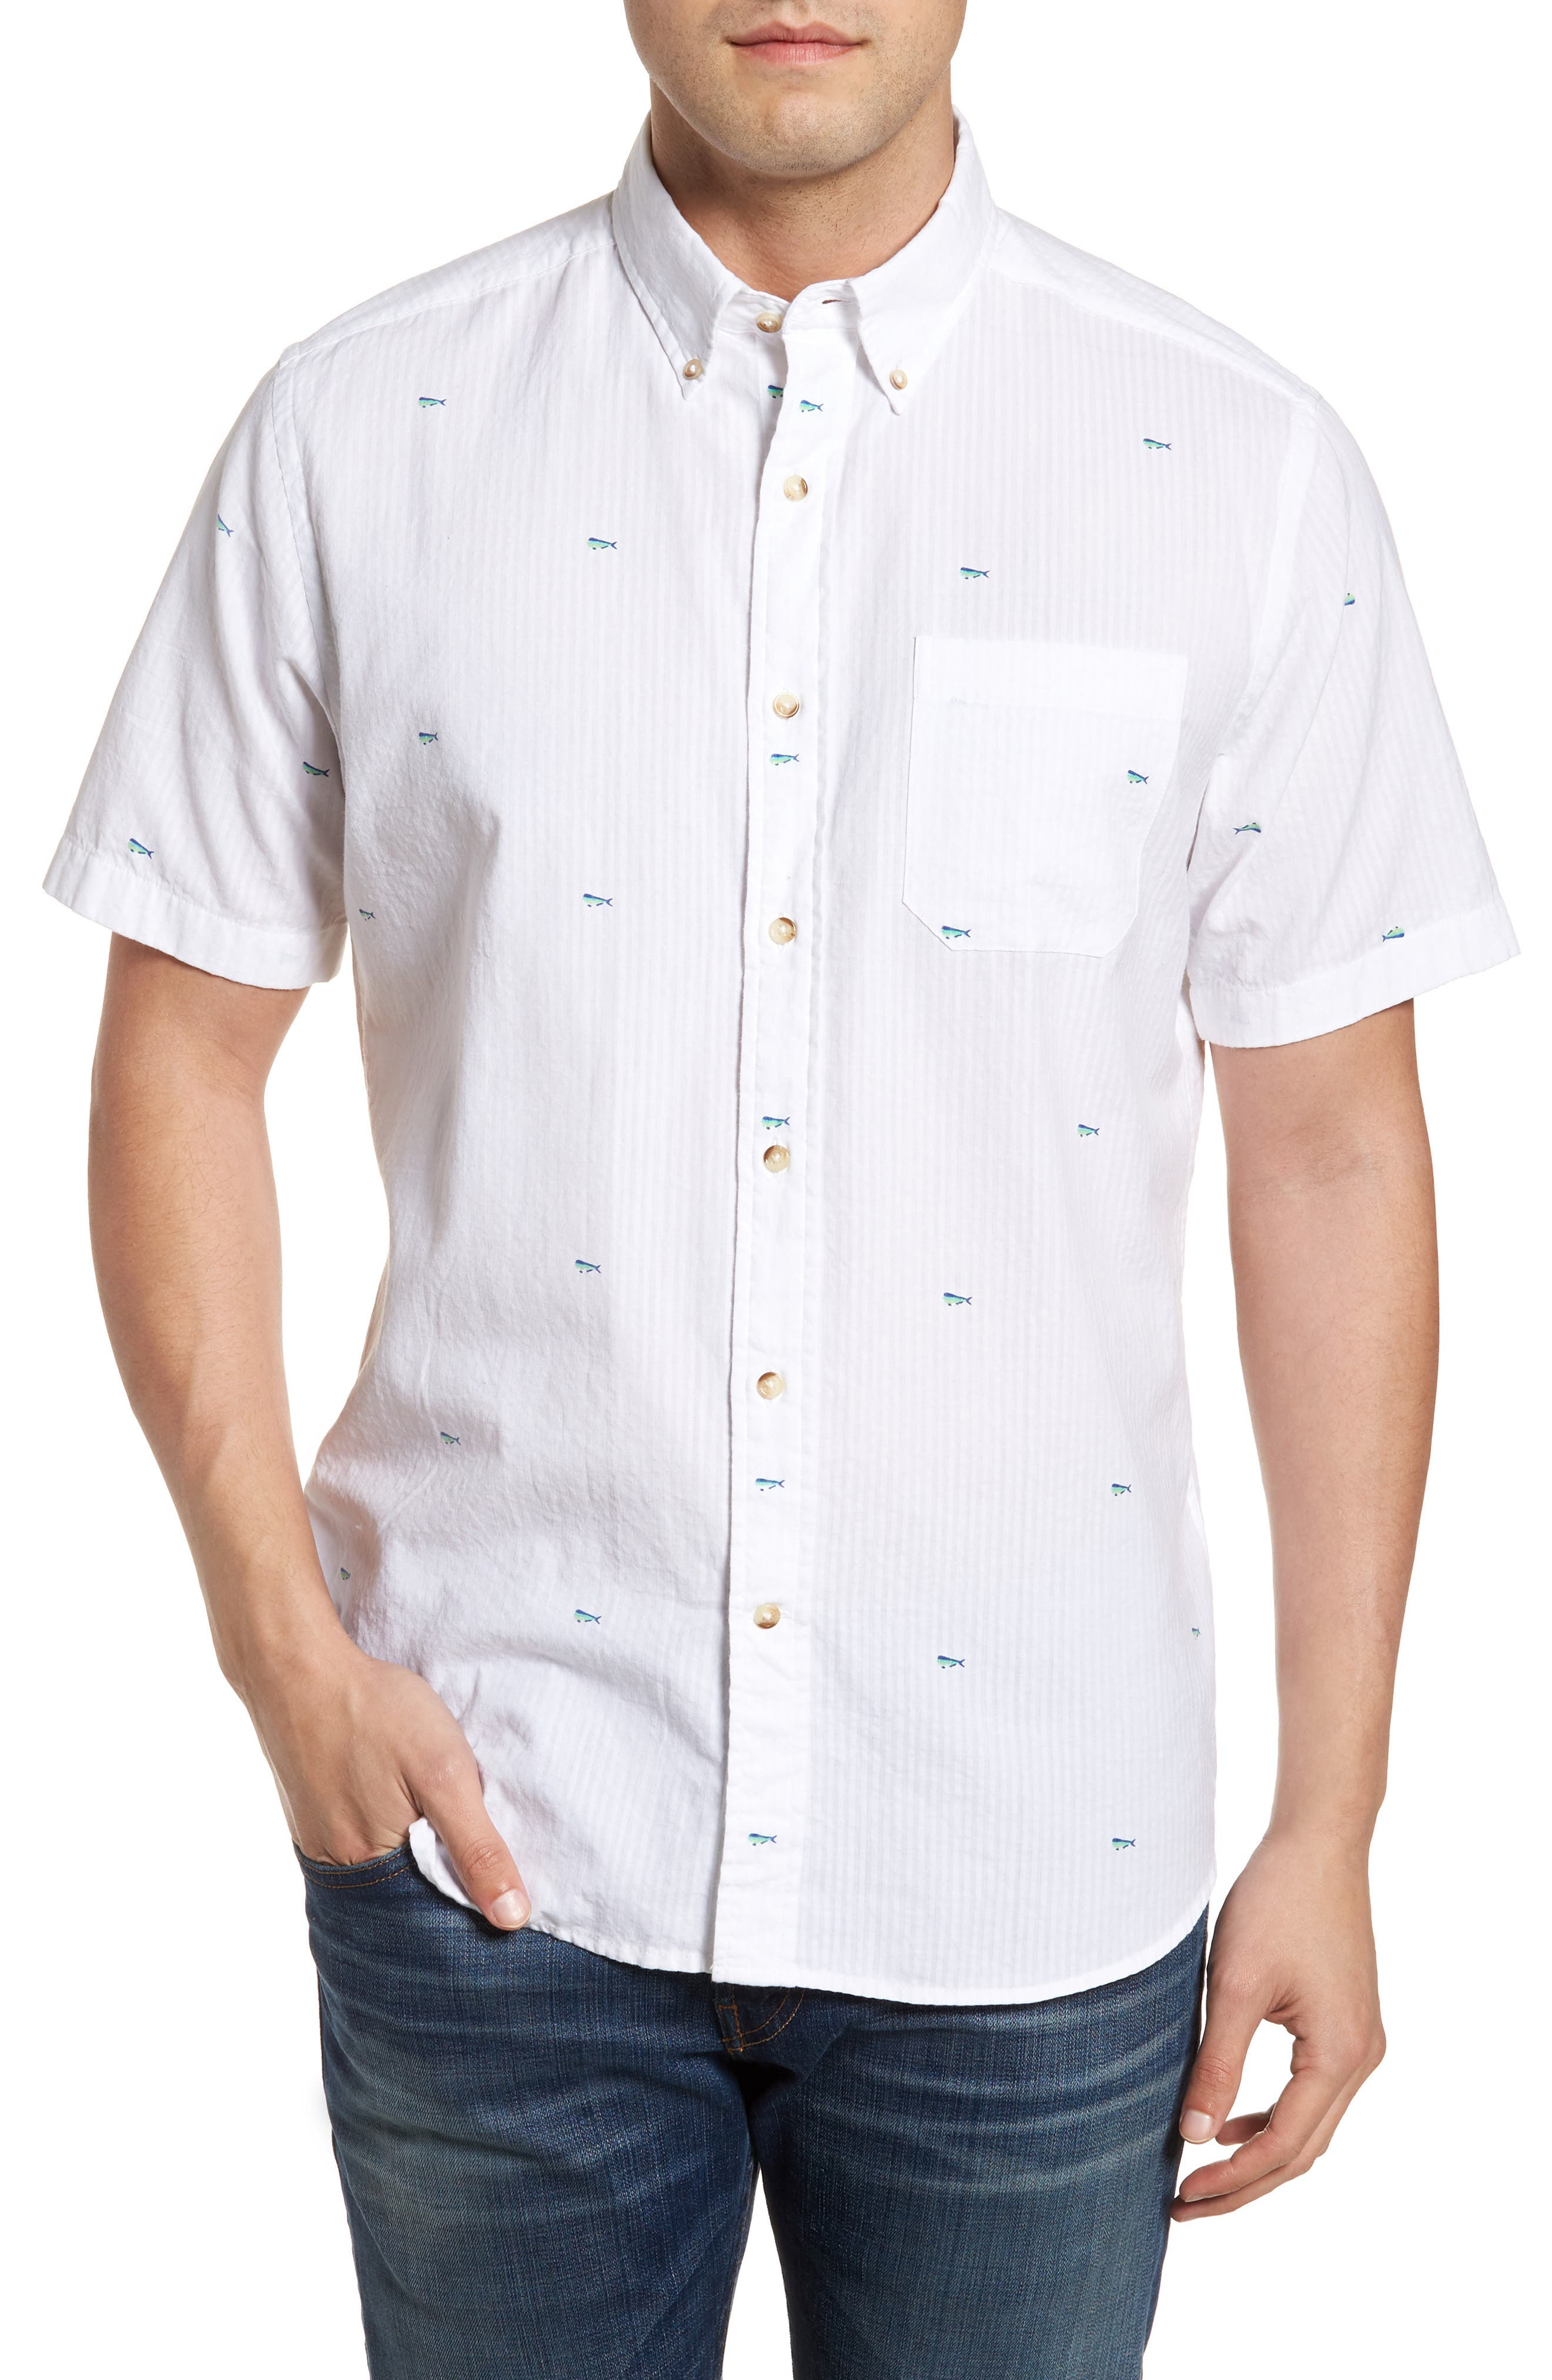 Catch of the Day Sport Shirt,                             Main thumbnail 1, color,                             107